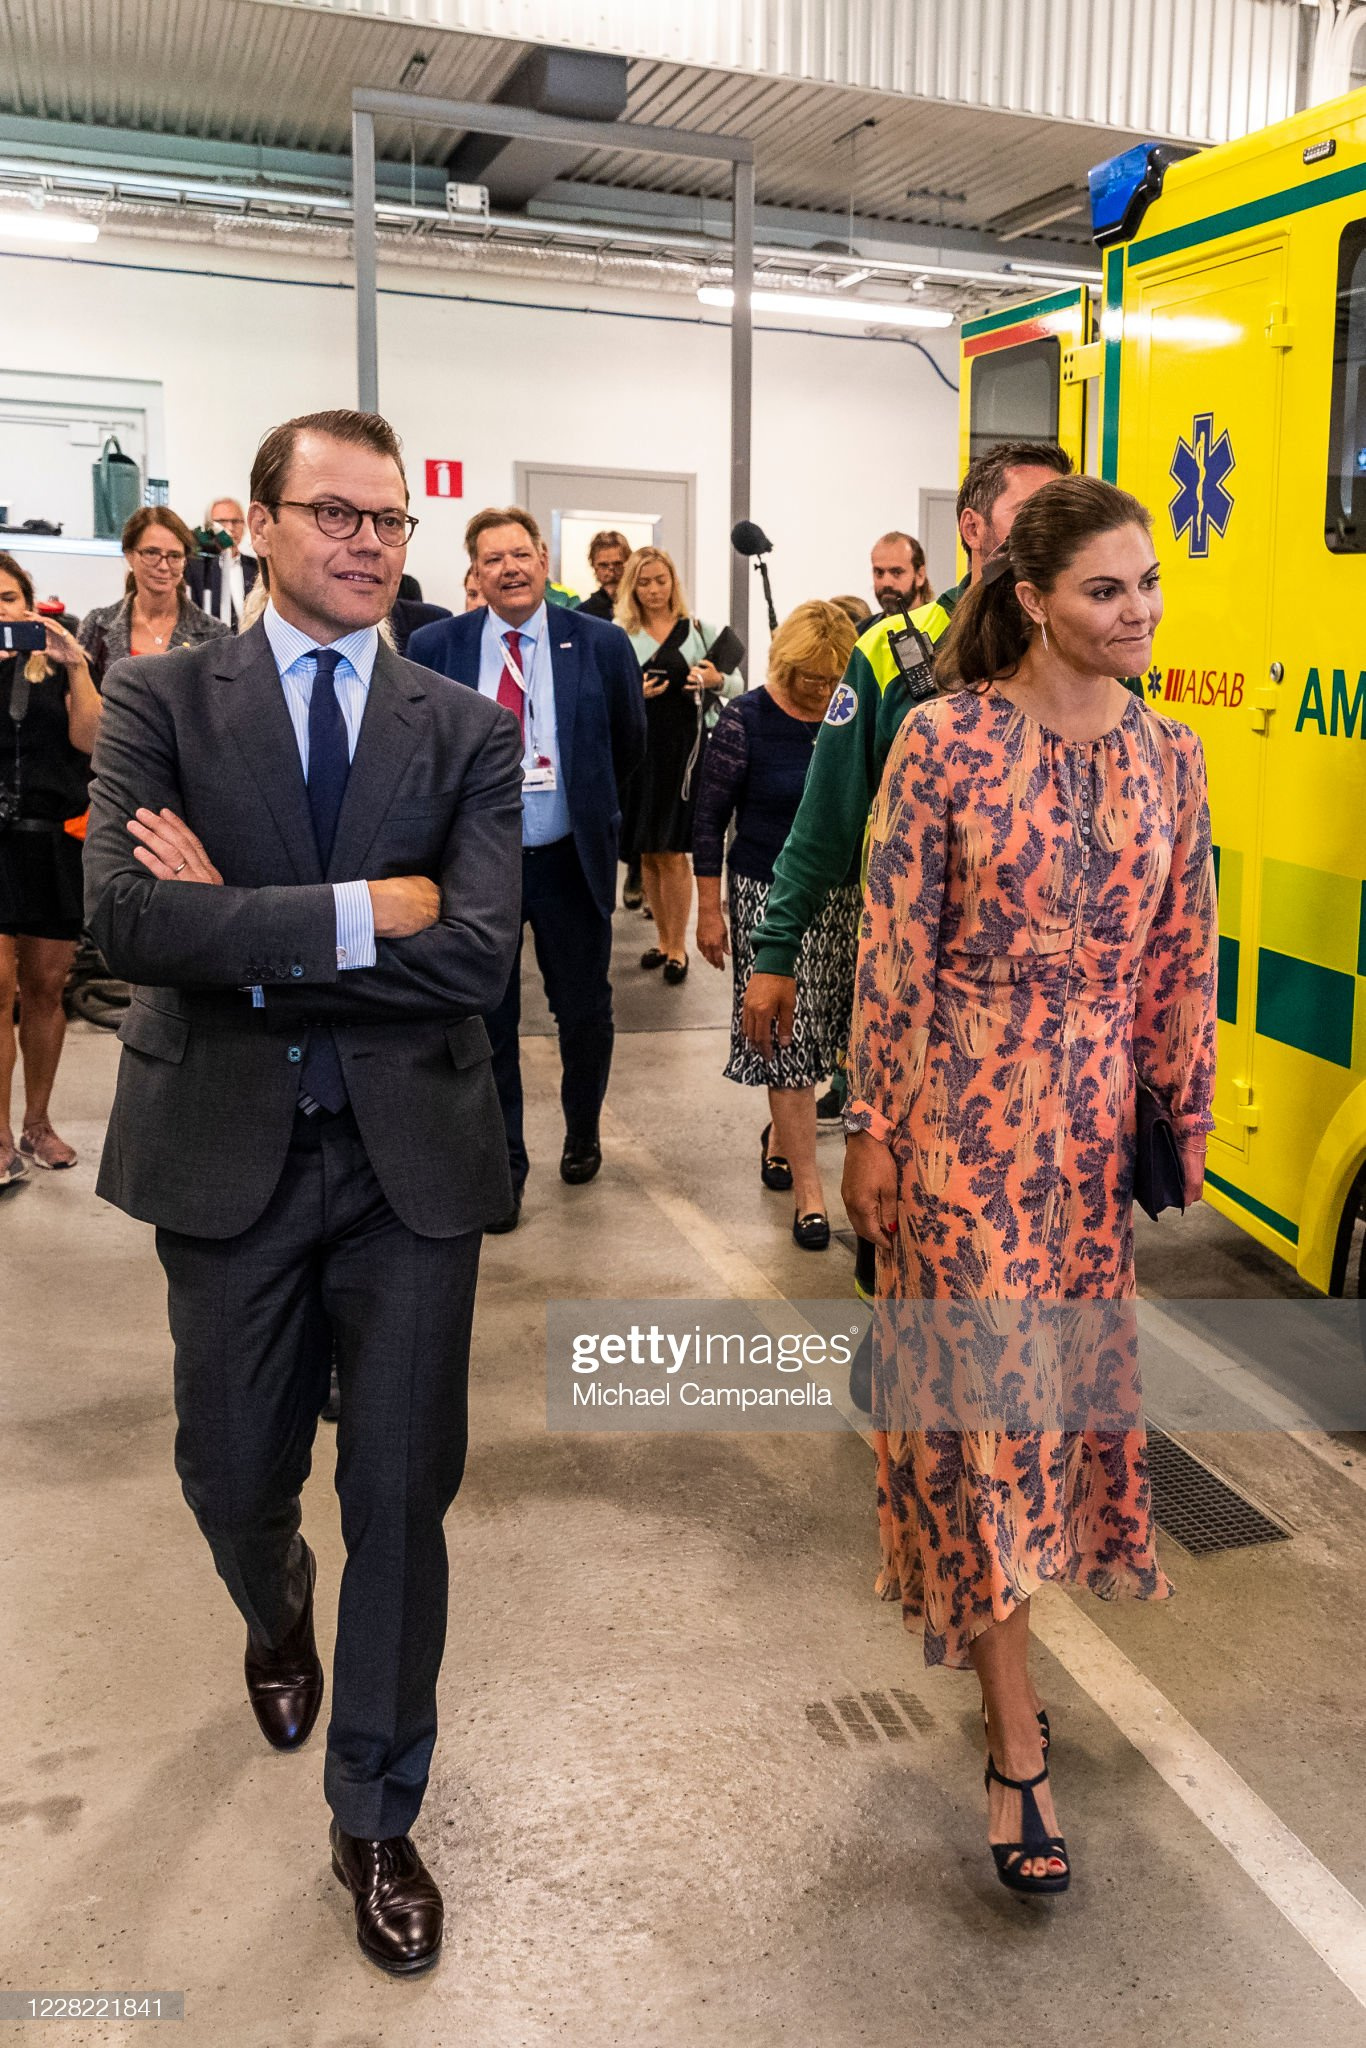 crown-princess-victoria-and-prince-daniel-of-sweden-visit-an-station-picture-id1228221841